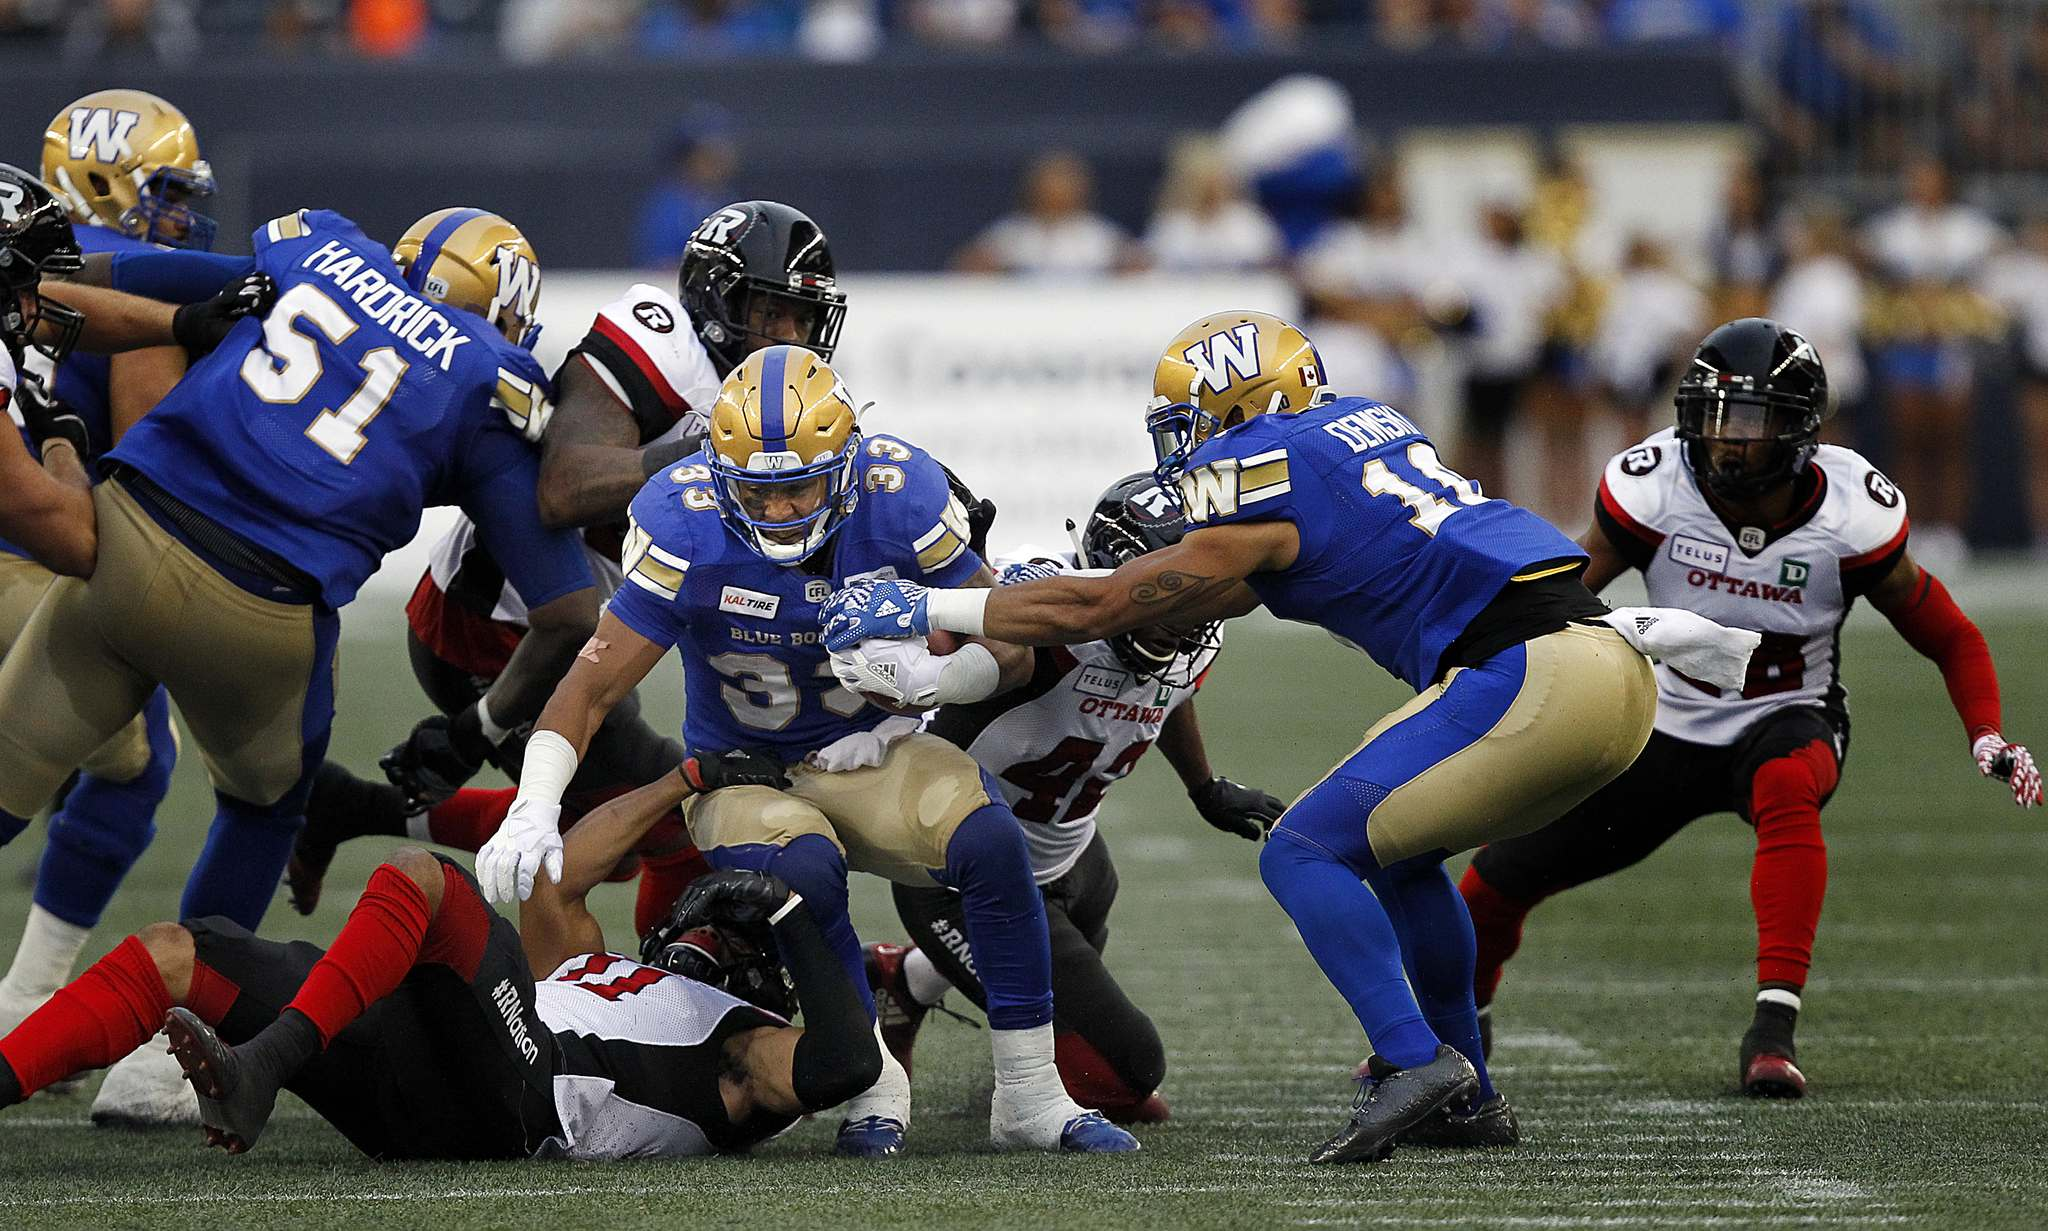 PHIL HOSSACK / WINNIPEG FREE PRESS -</p><p>Winnipeg Blue Bomber #33 Andrew Harris scrambles through the line of scrimmage.</p>